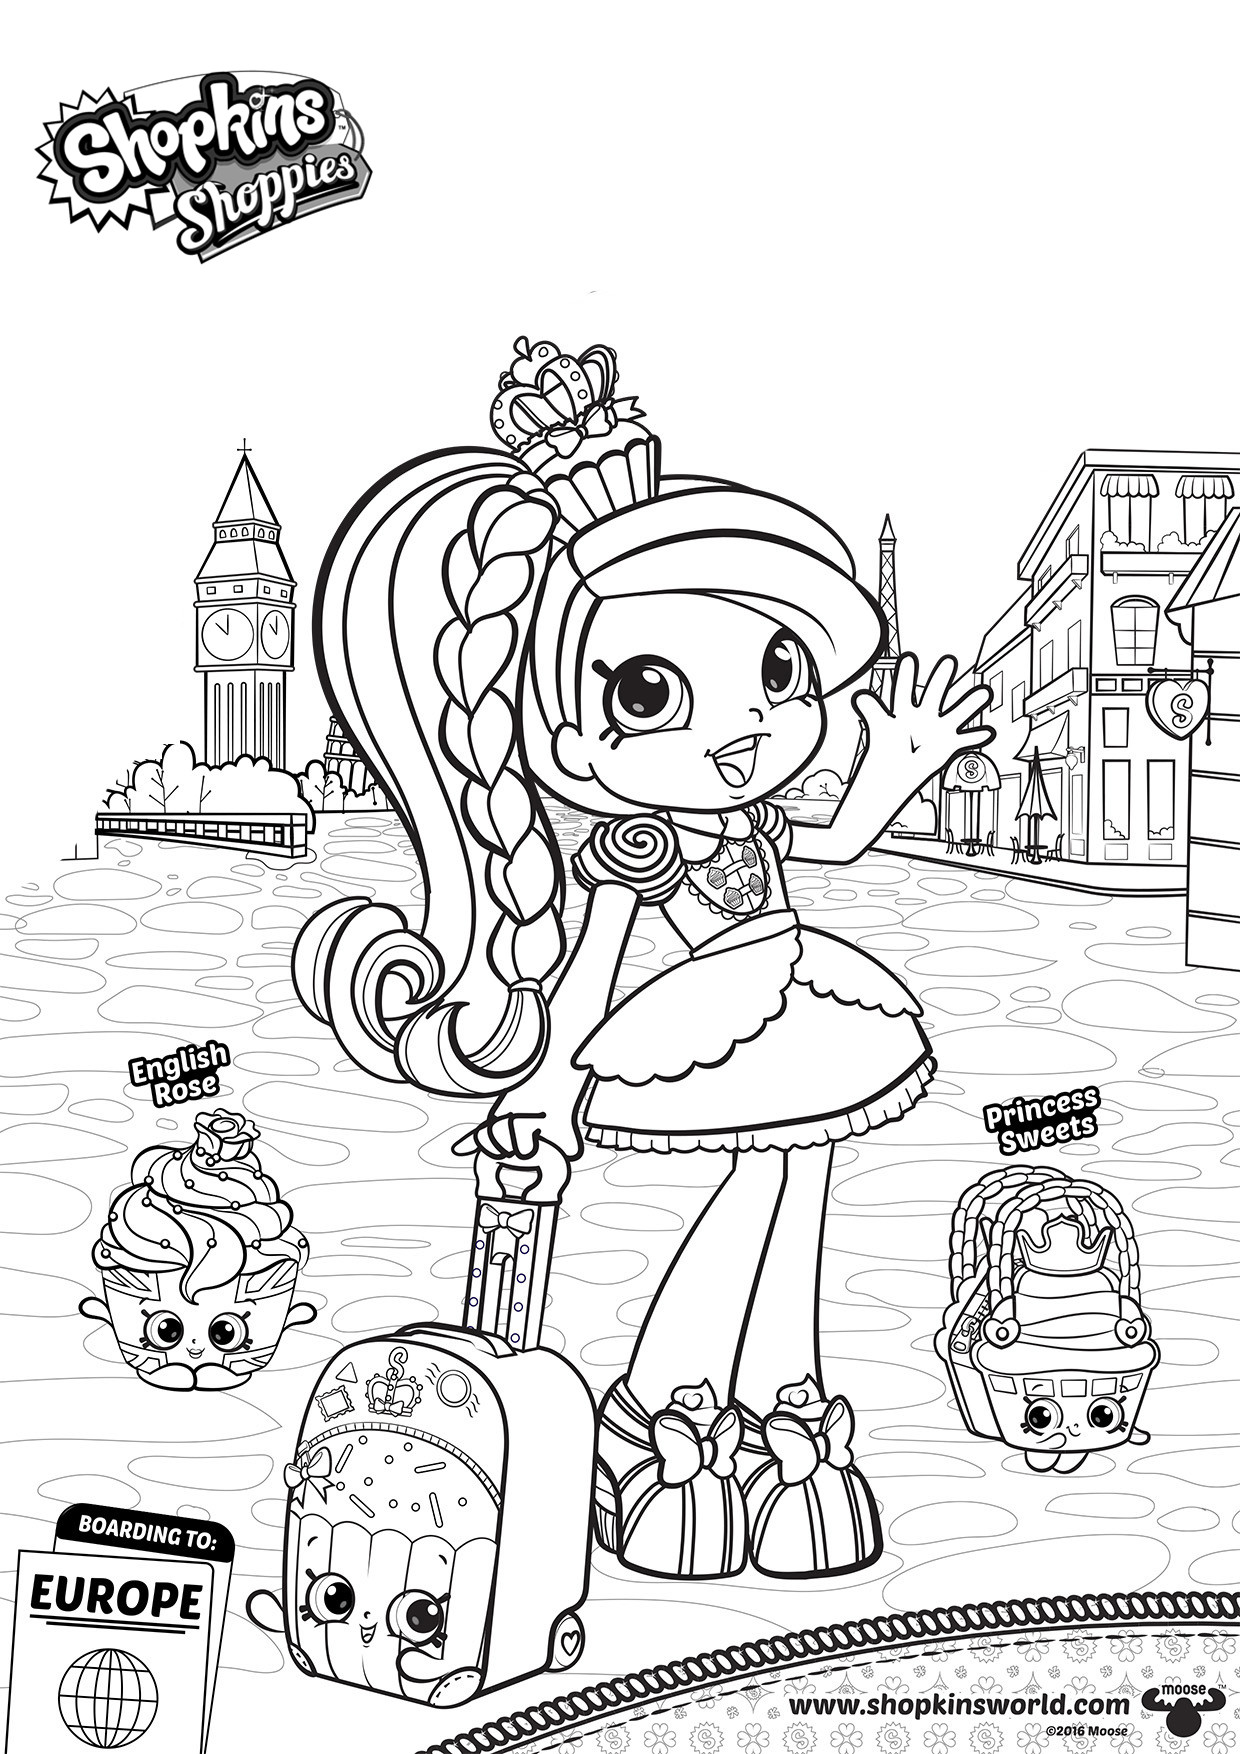 free shoppies coloring pages shopkins world vacation jessicake printable for kids and adults